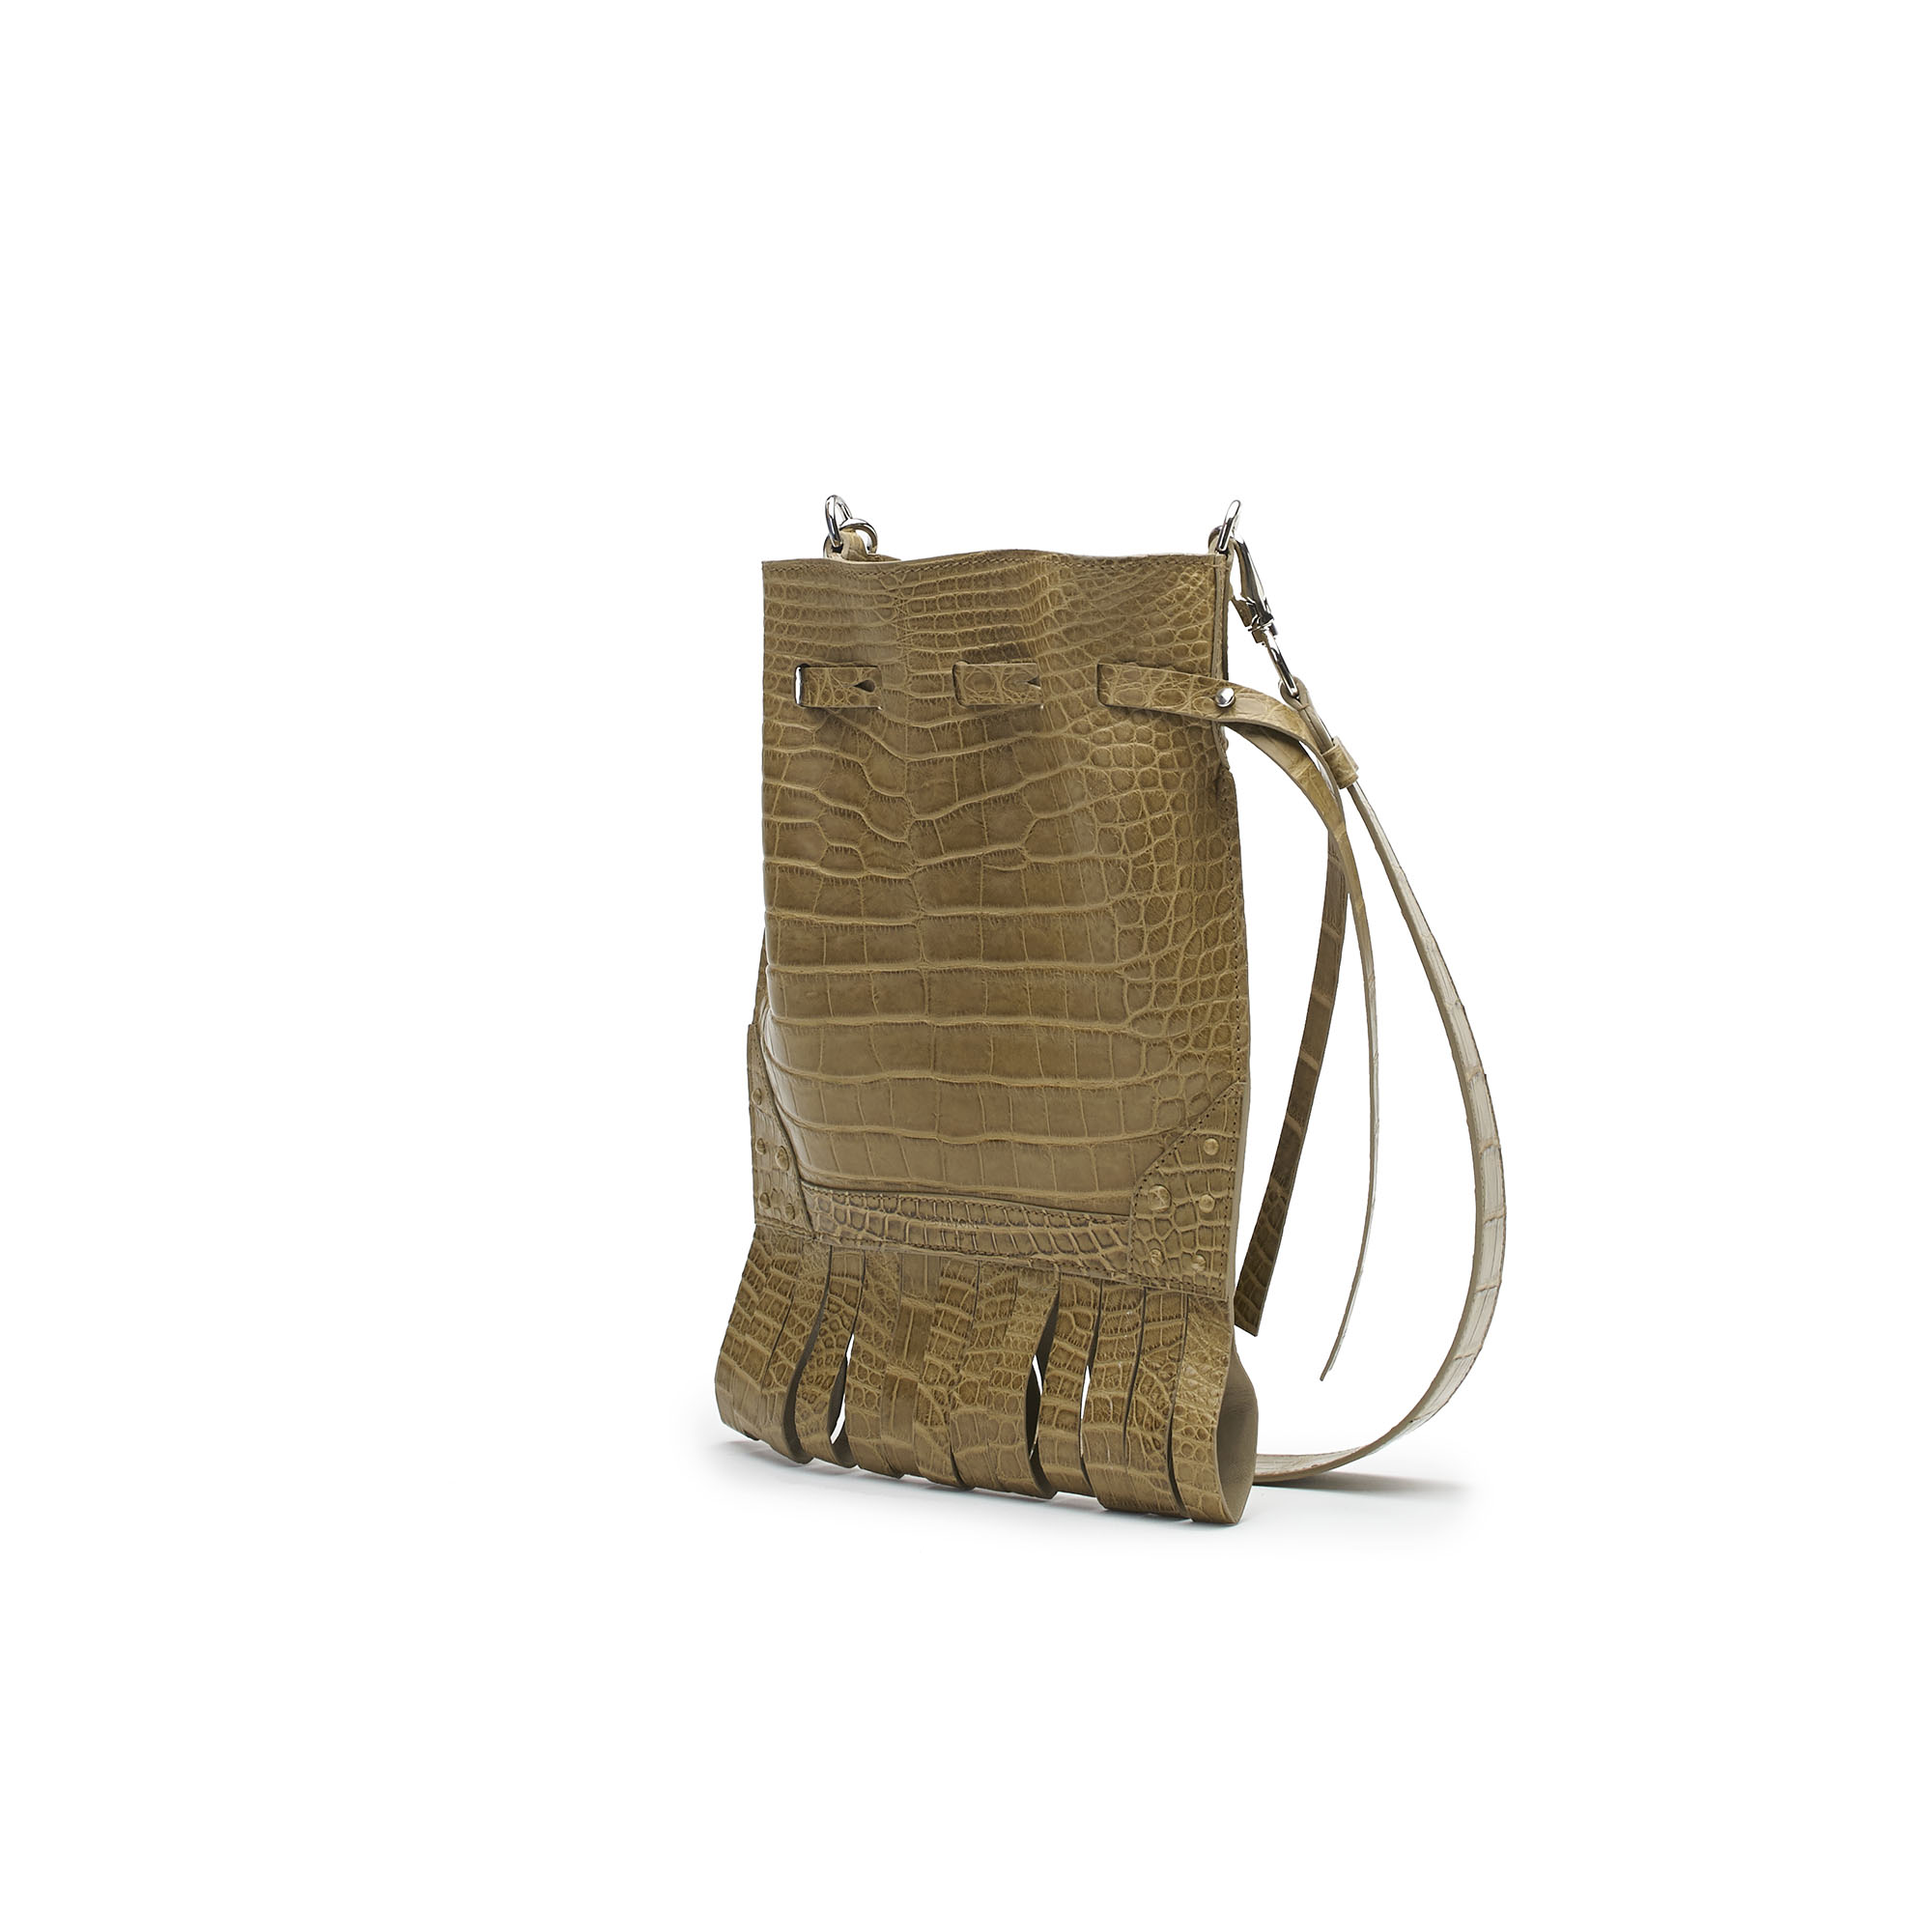 The Beige alligator Fanny Fringe bag by Bertoni 1949 02